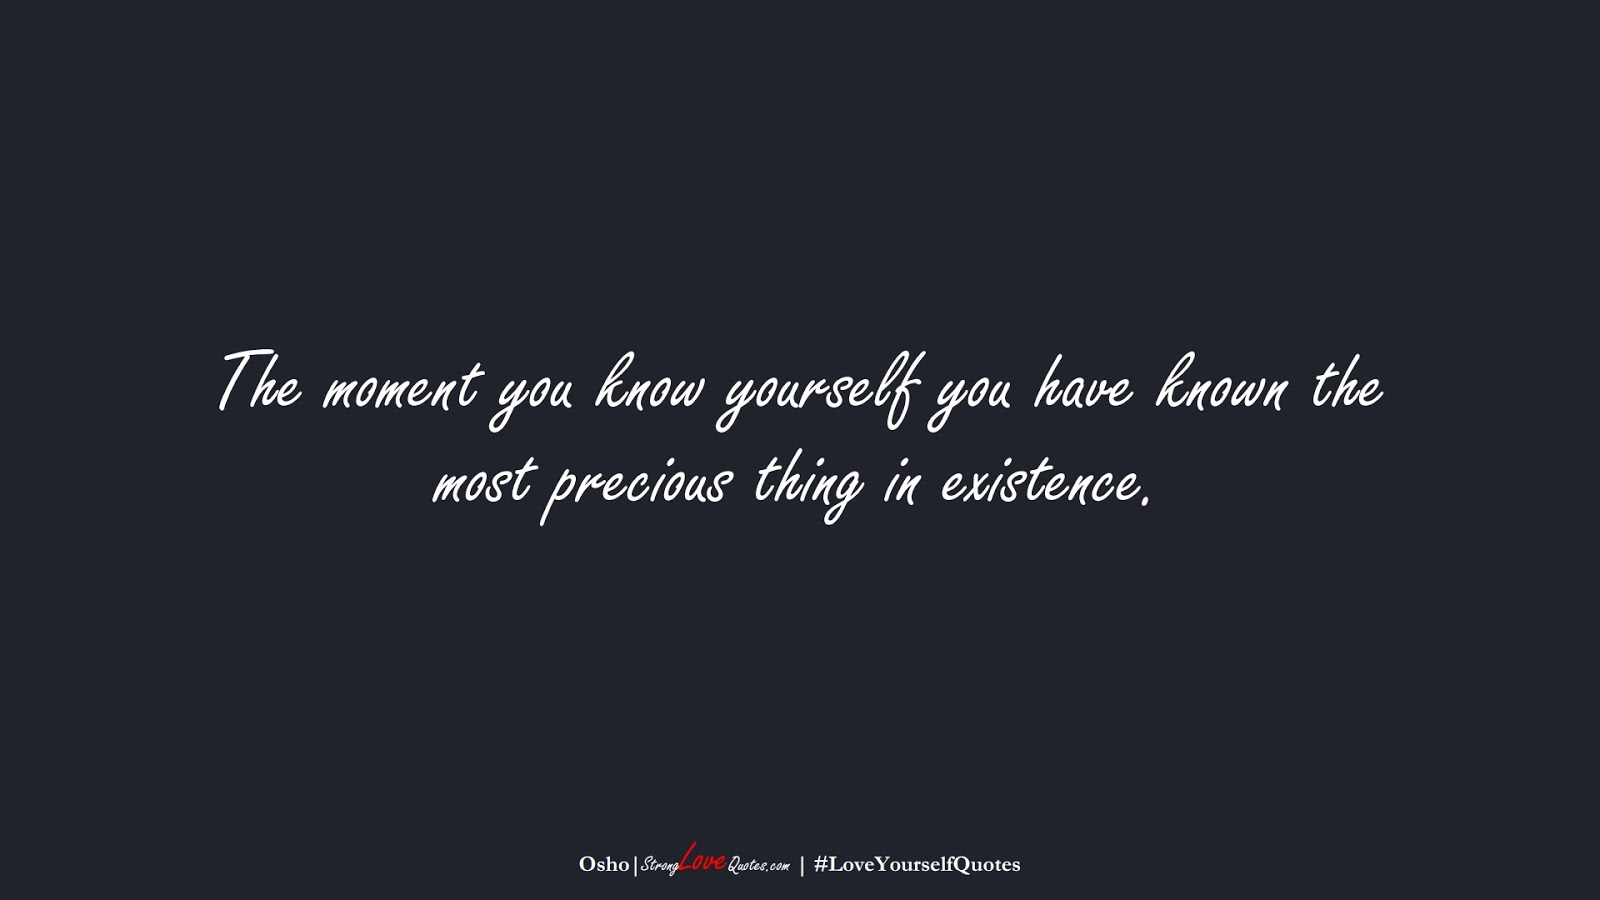 The moment you know yourself you have known the most precious thing in existence. (Osho);  #LoveYourselfQuotes